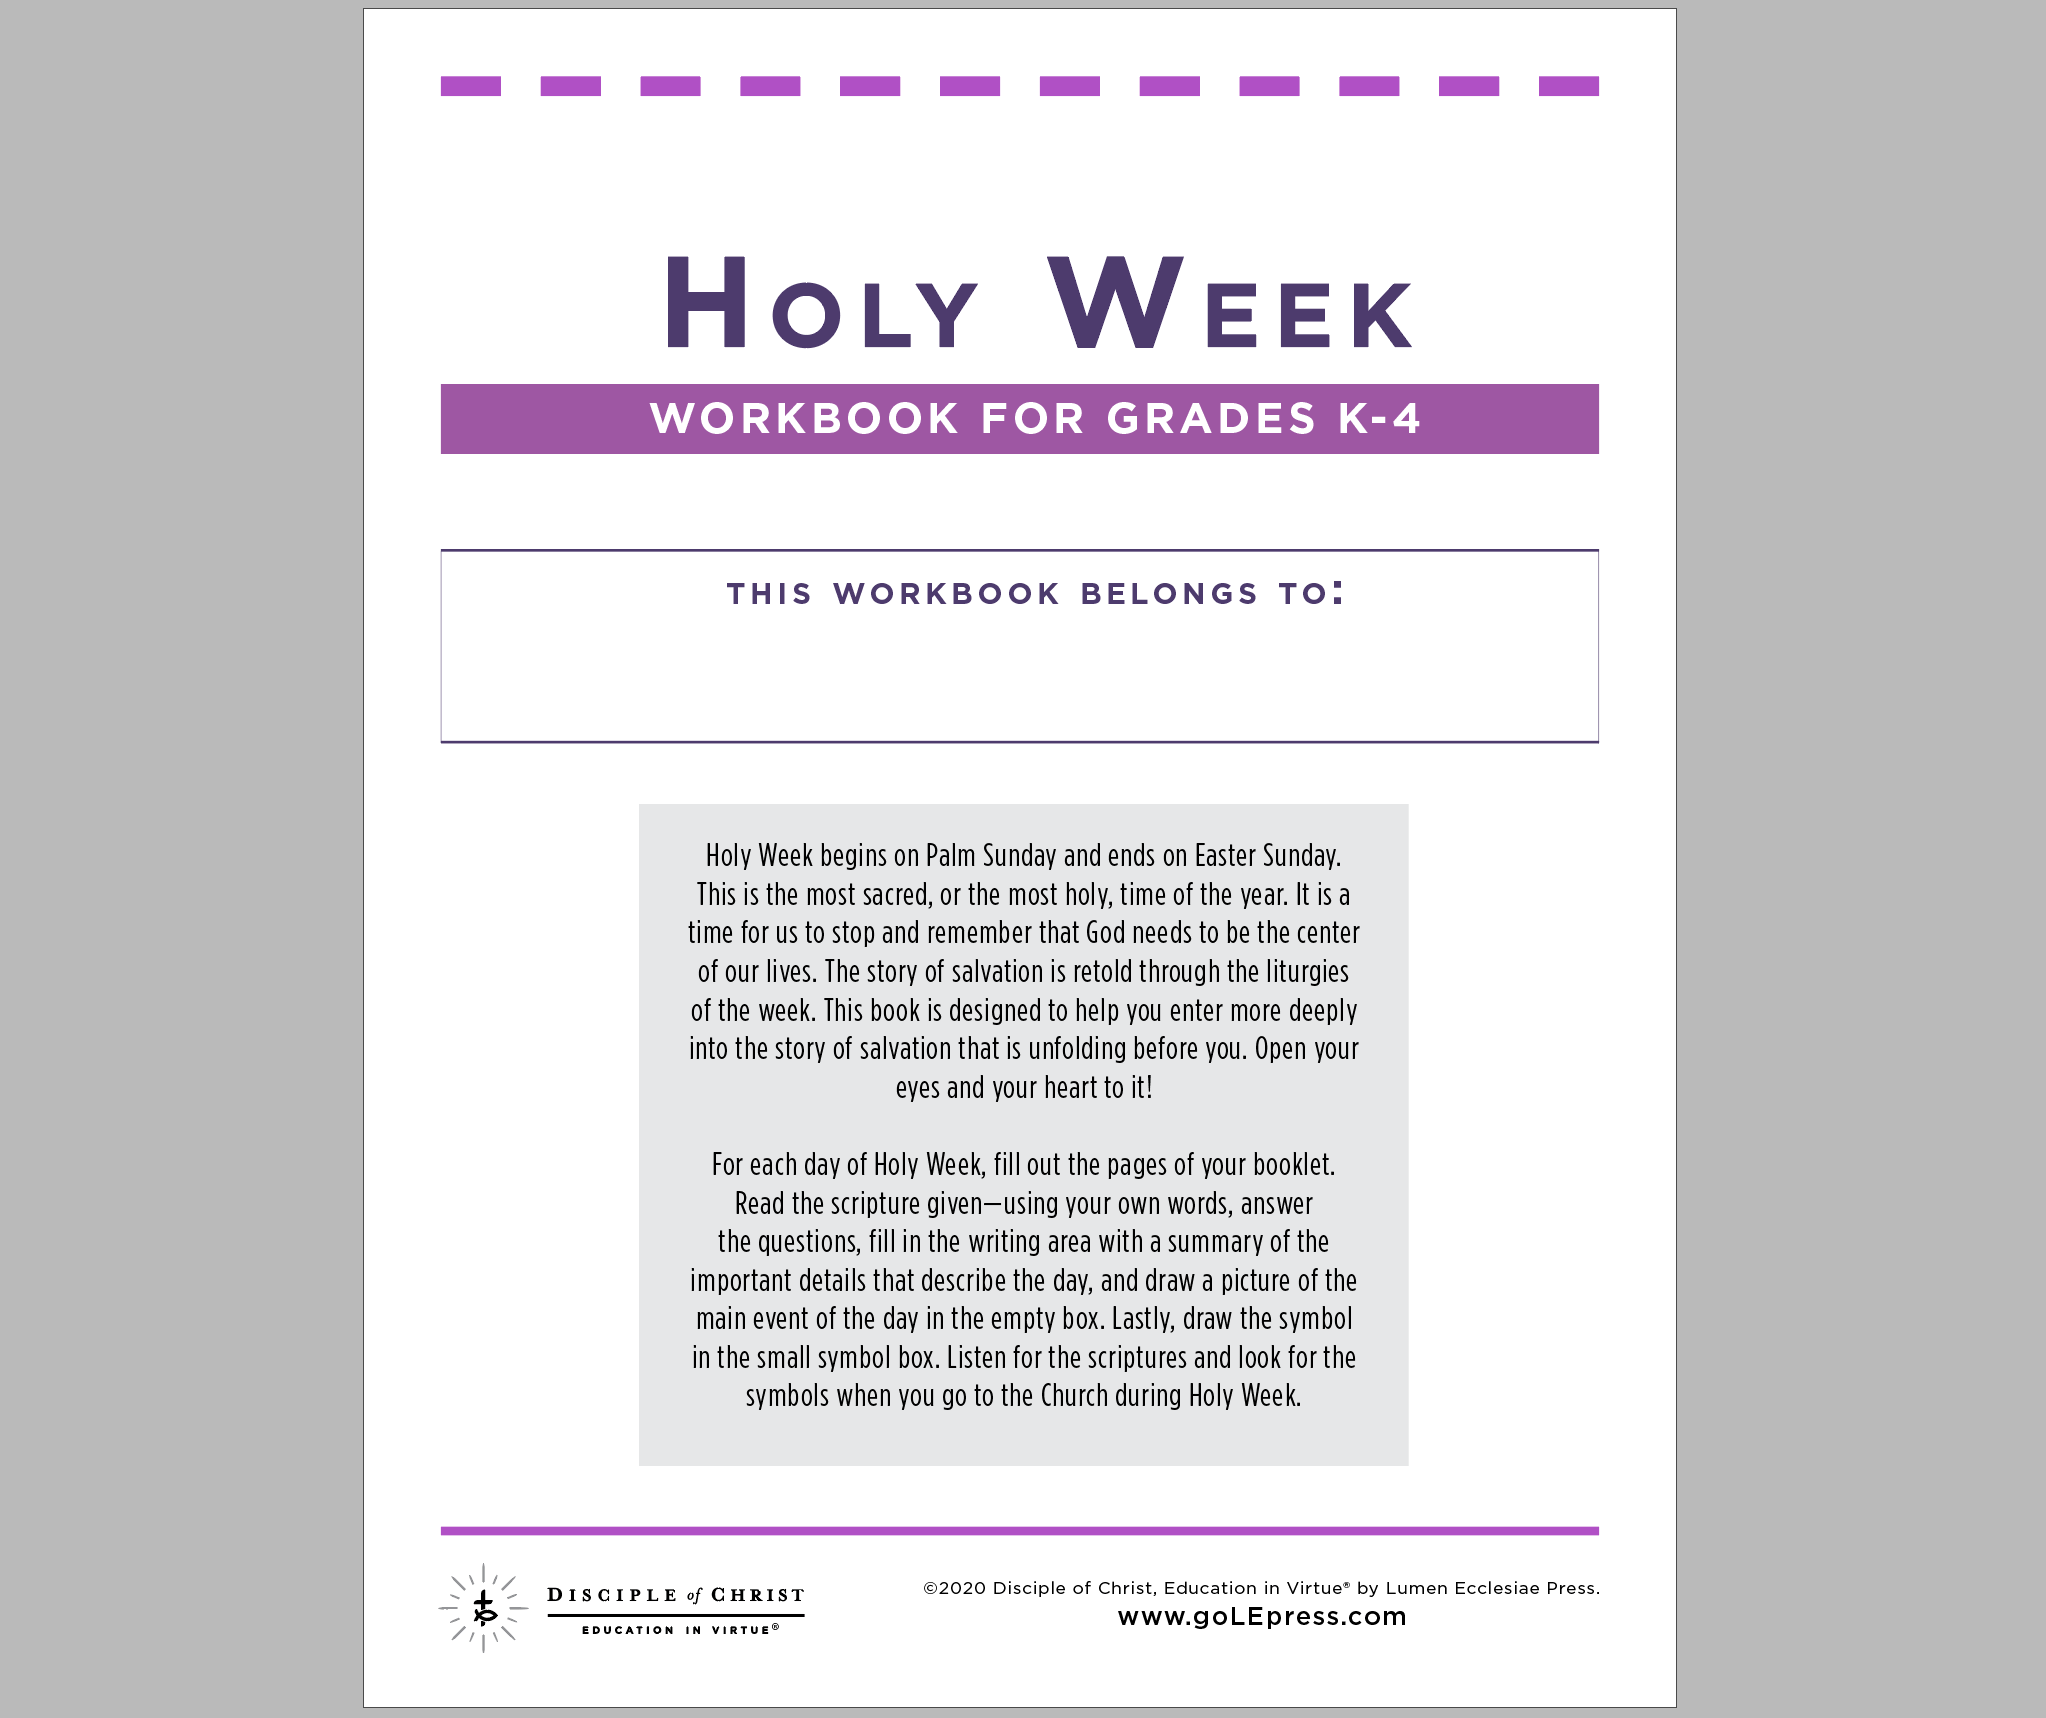 Holy Week Worksheets Lumen Ecclesiae Press